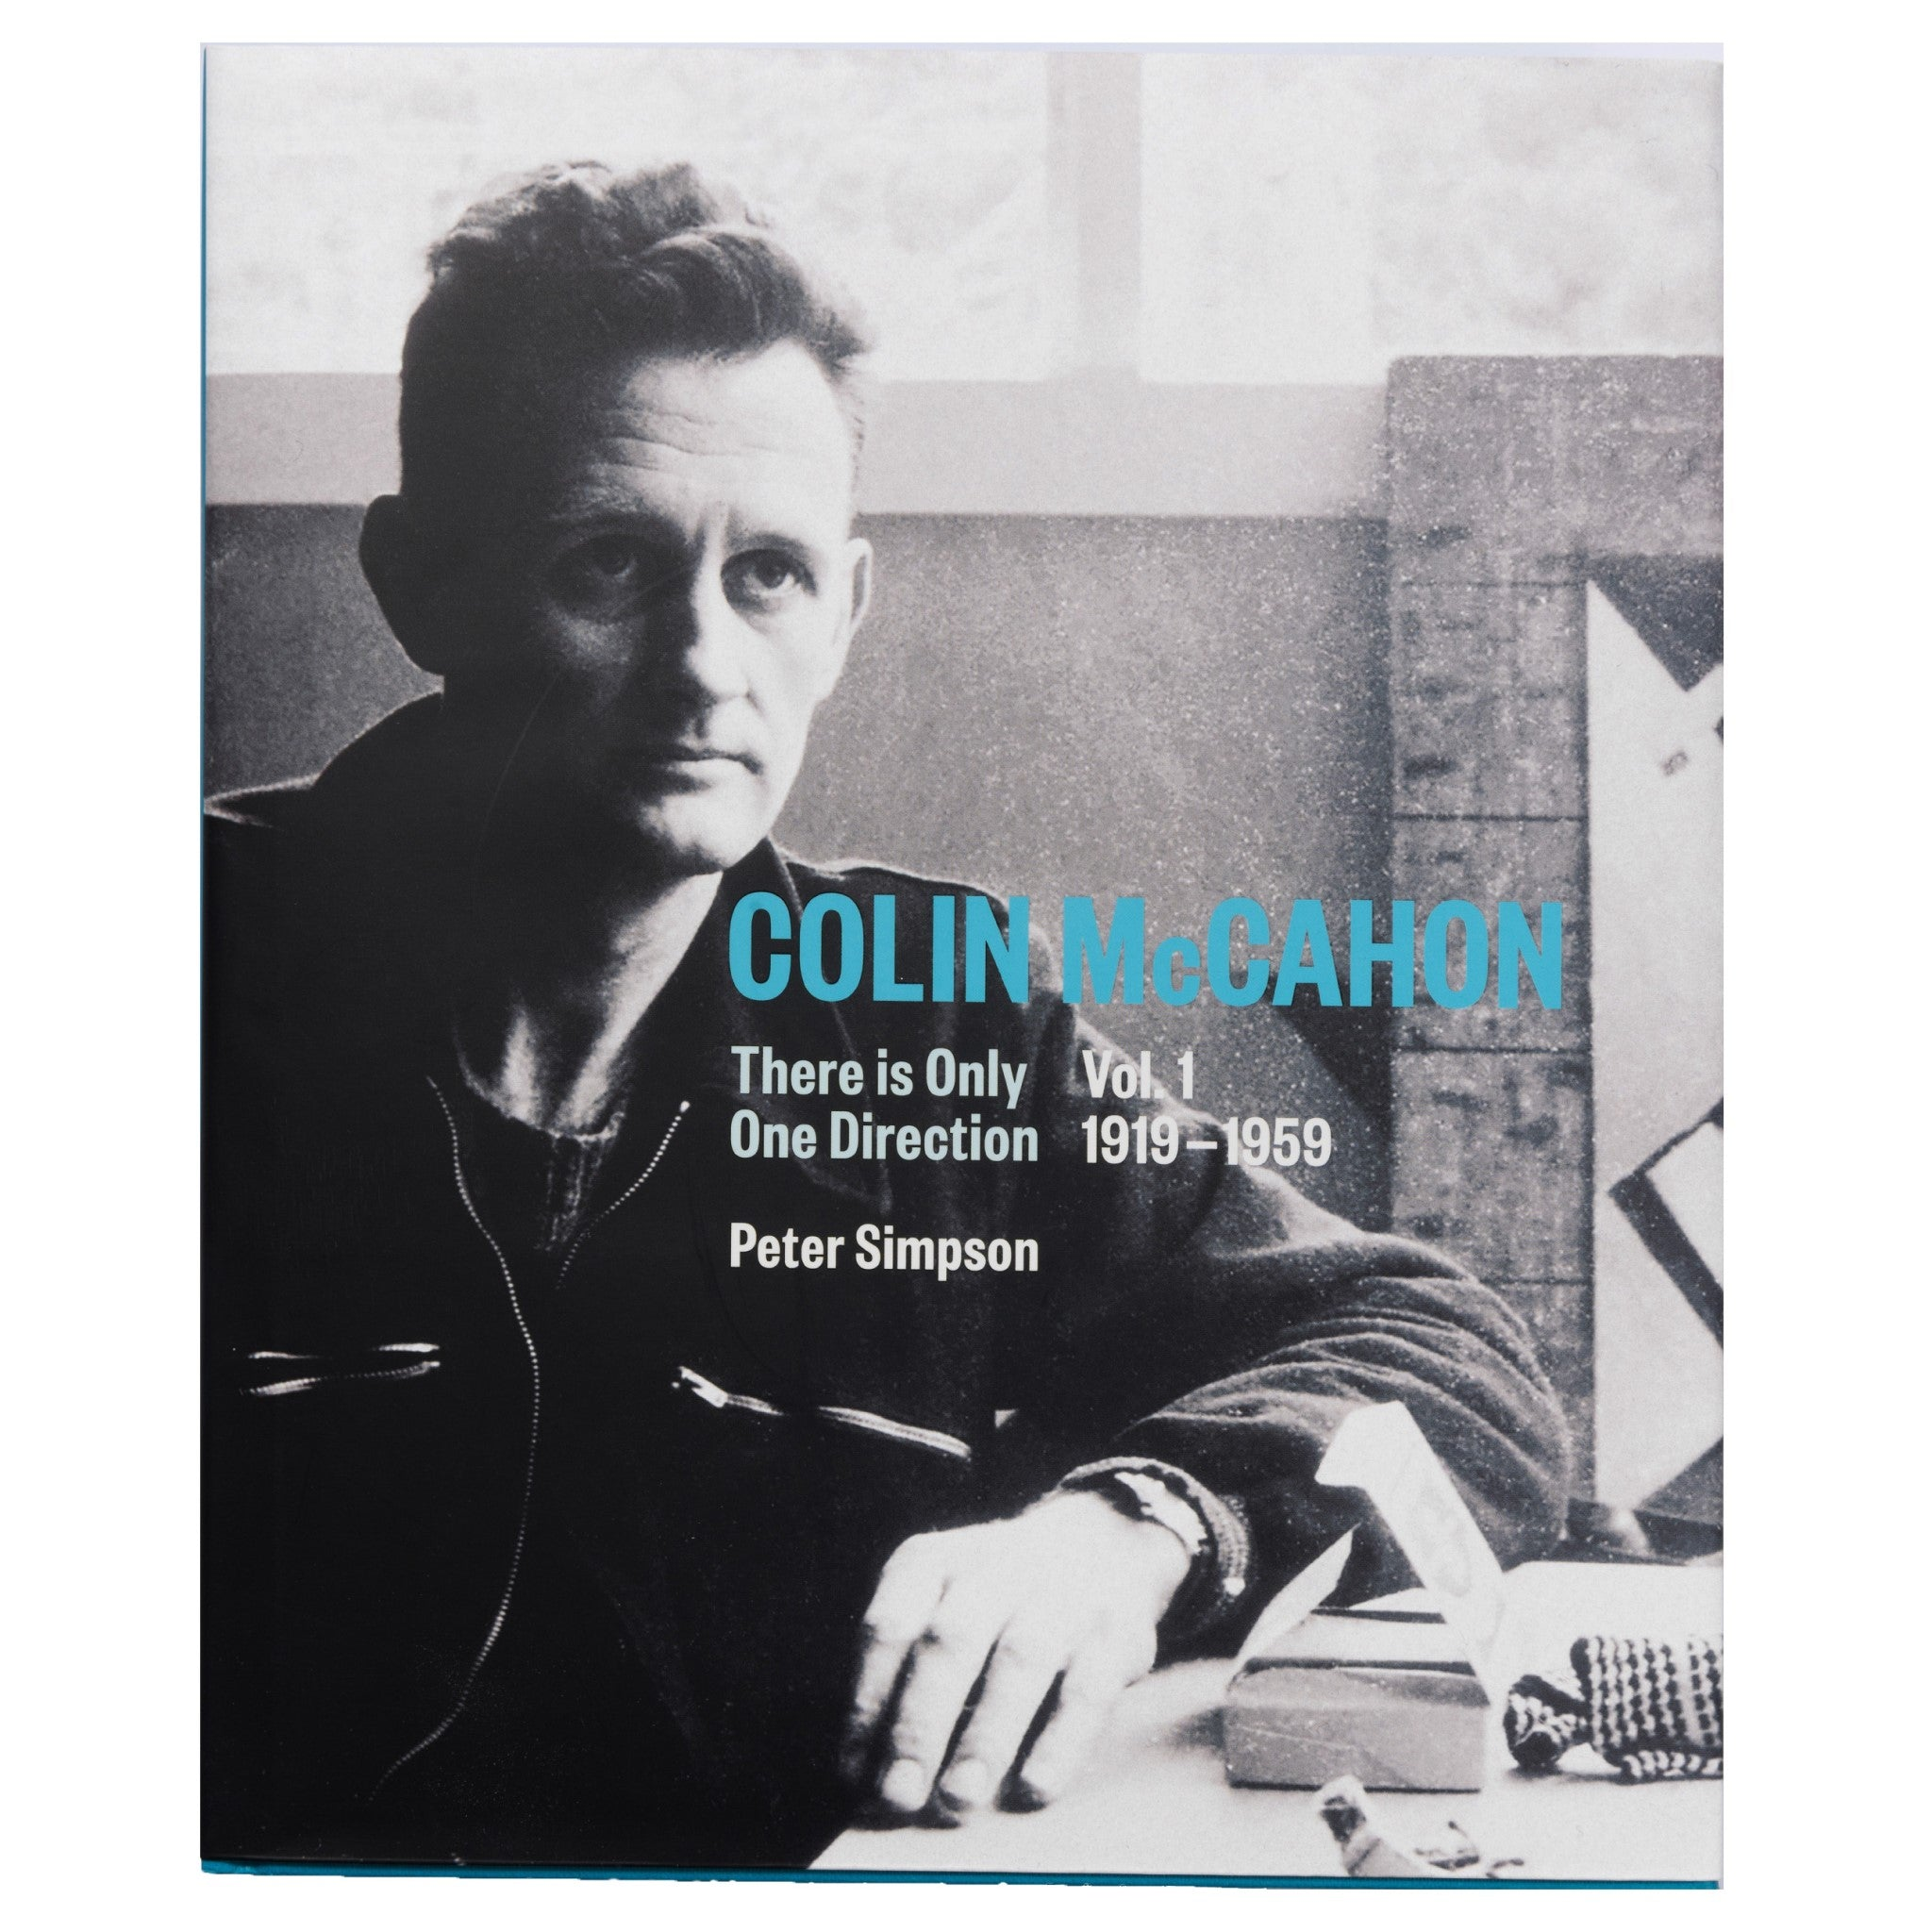 Colin McCahon: There is Only One Direction Vol. 1 Image